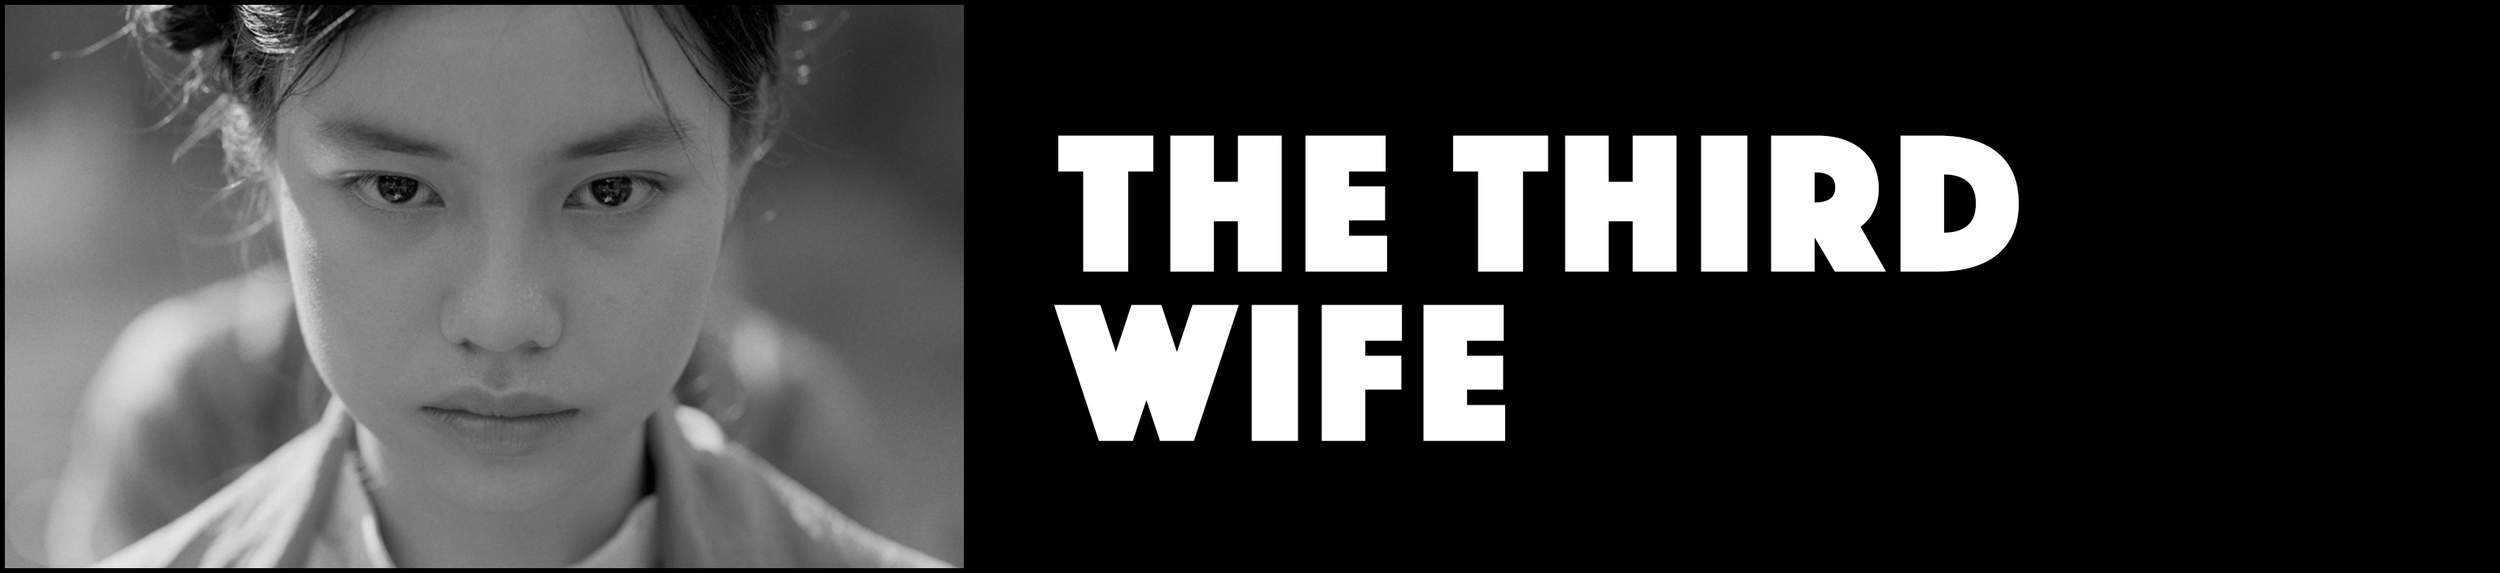 The Third Wife.png